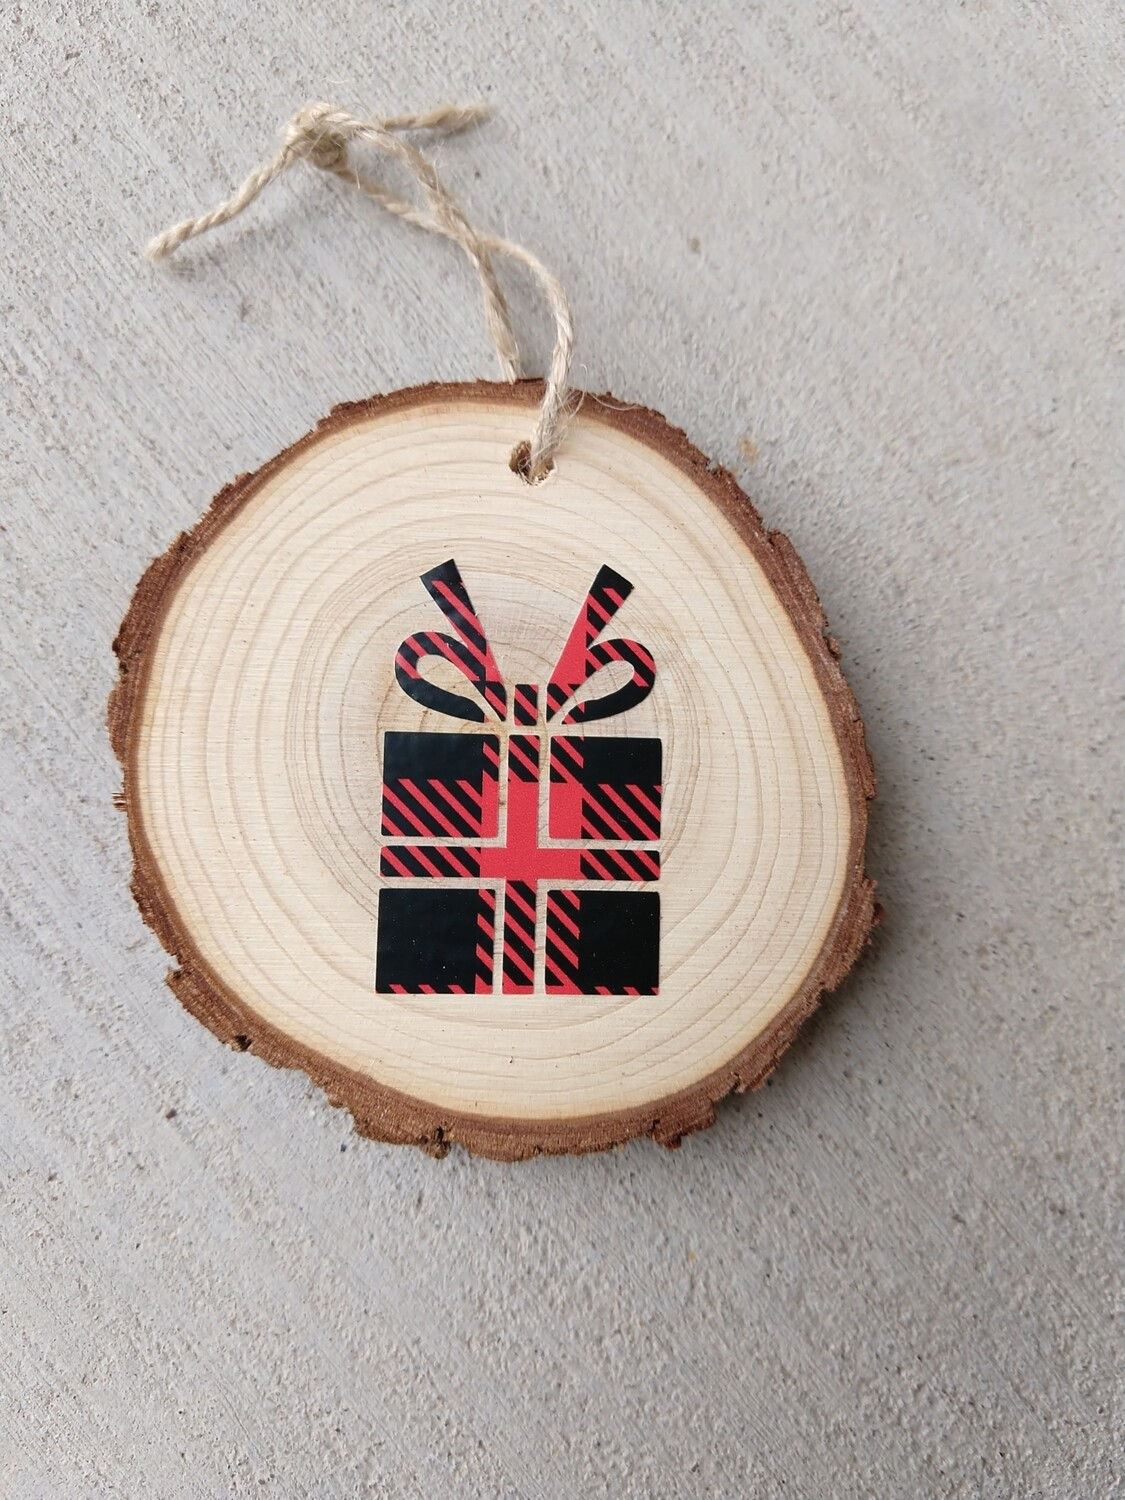 Rustic wooden ornament